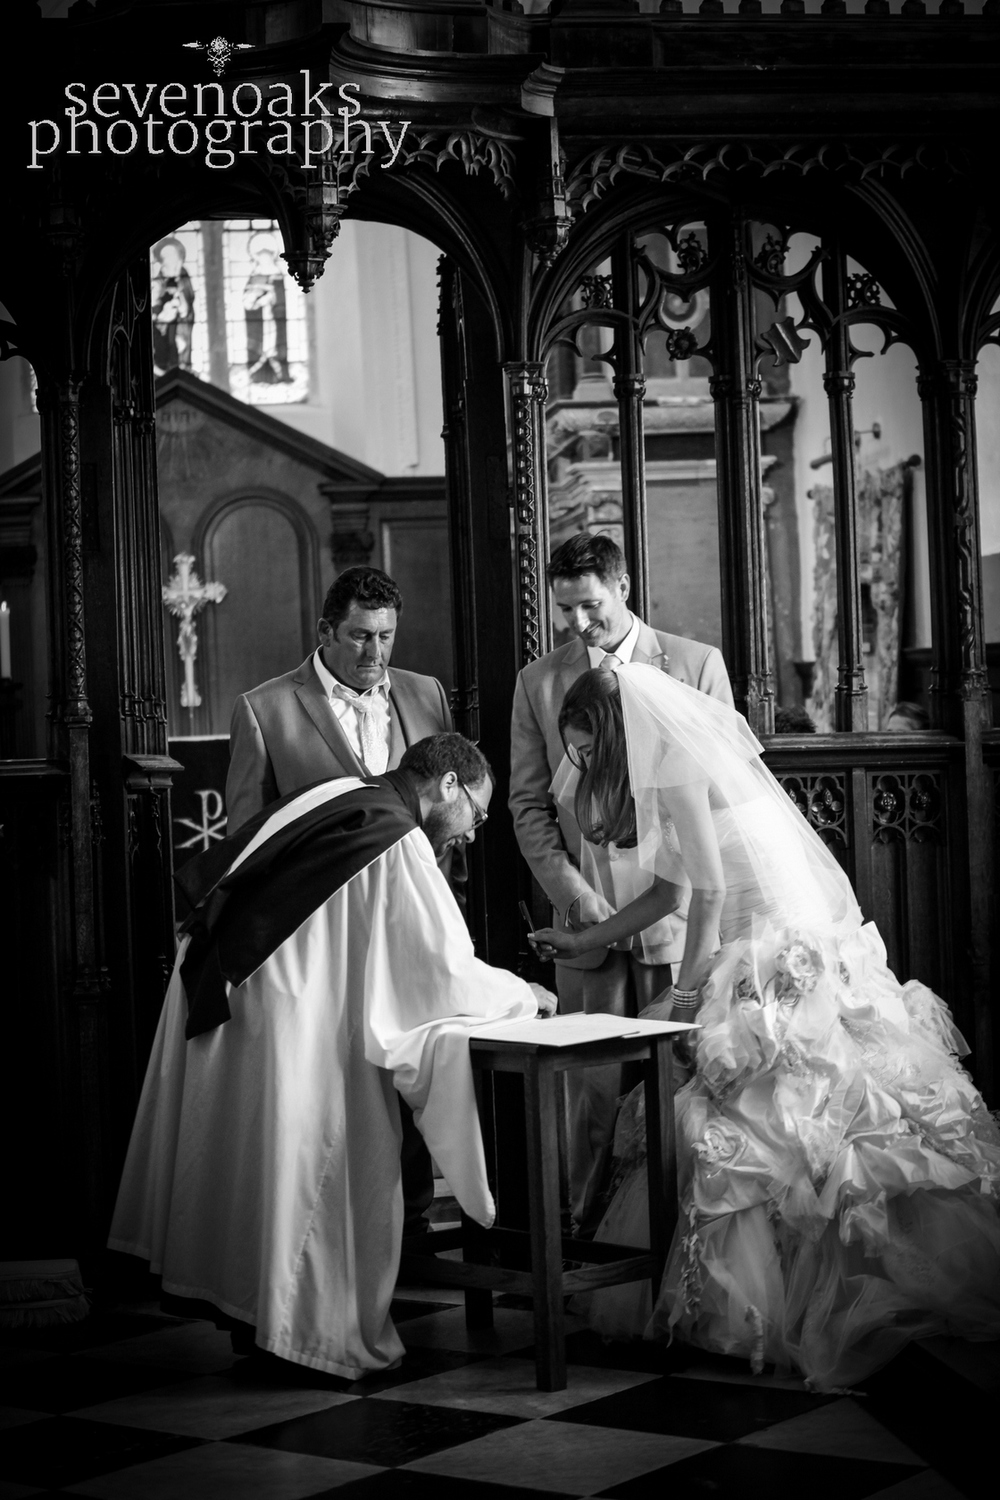 Sevenoaks documentary wedding photographer-98.jpg